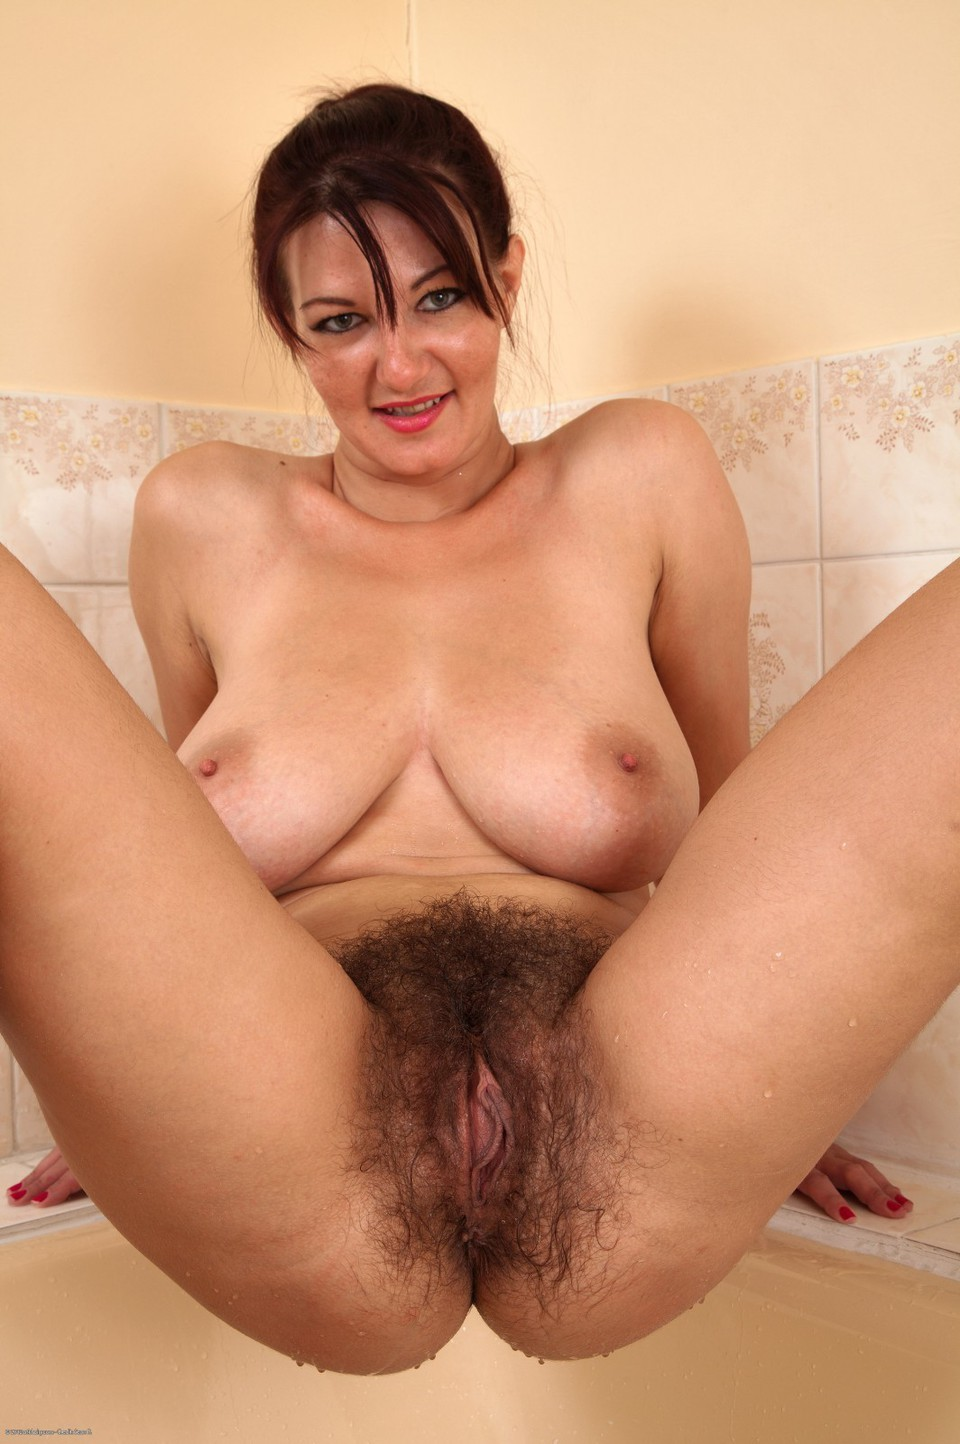 haiiry porn a female squirting